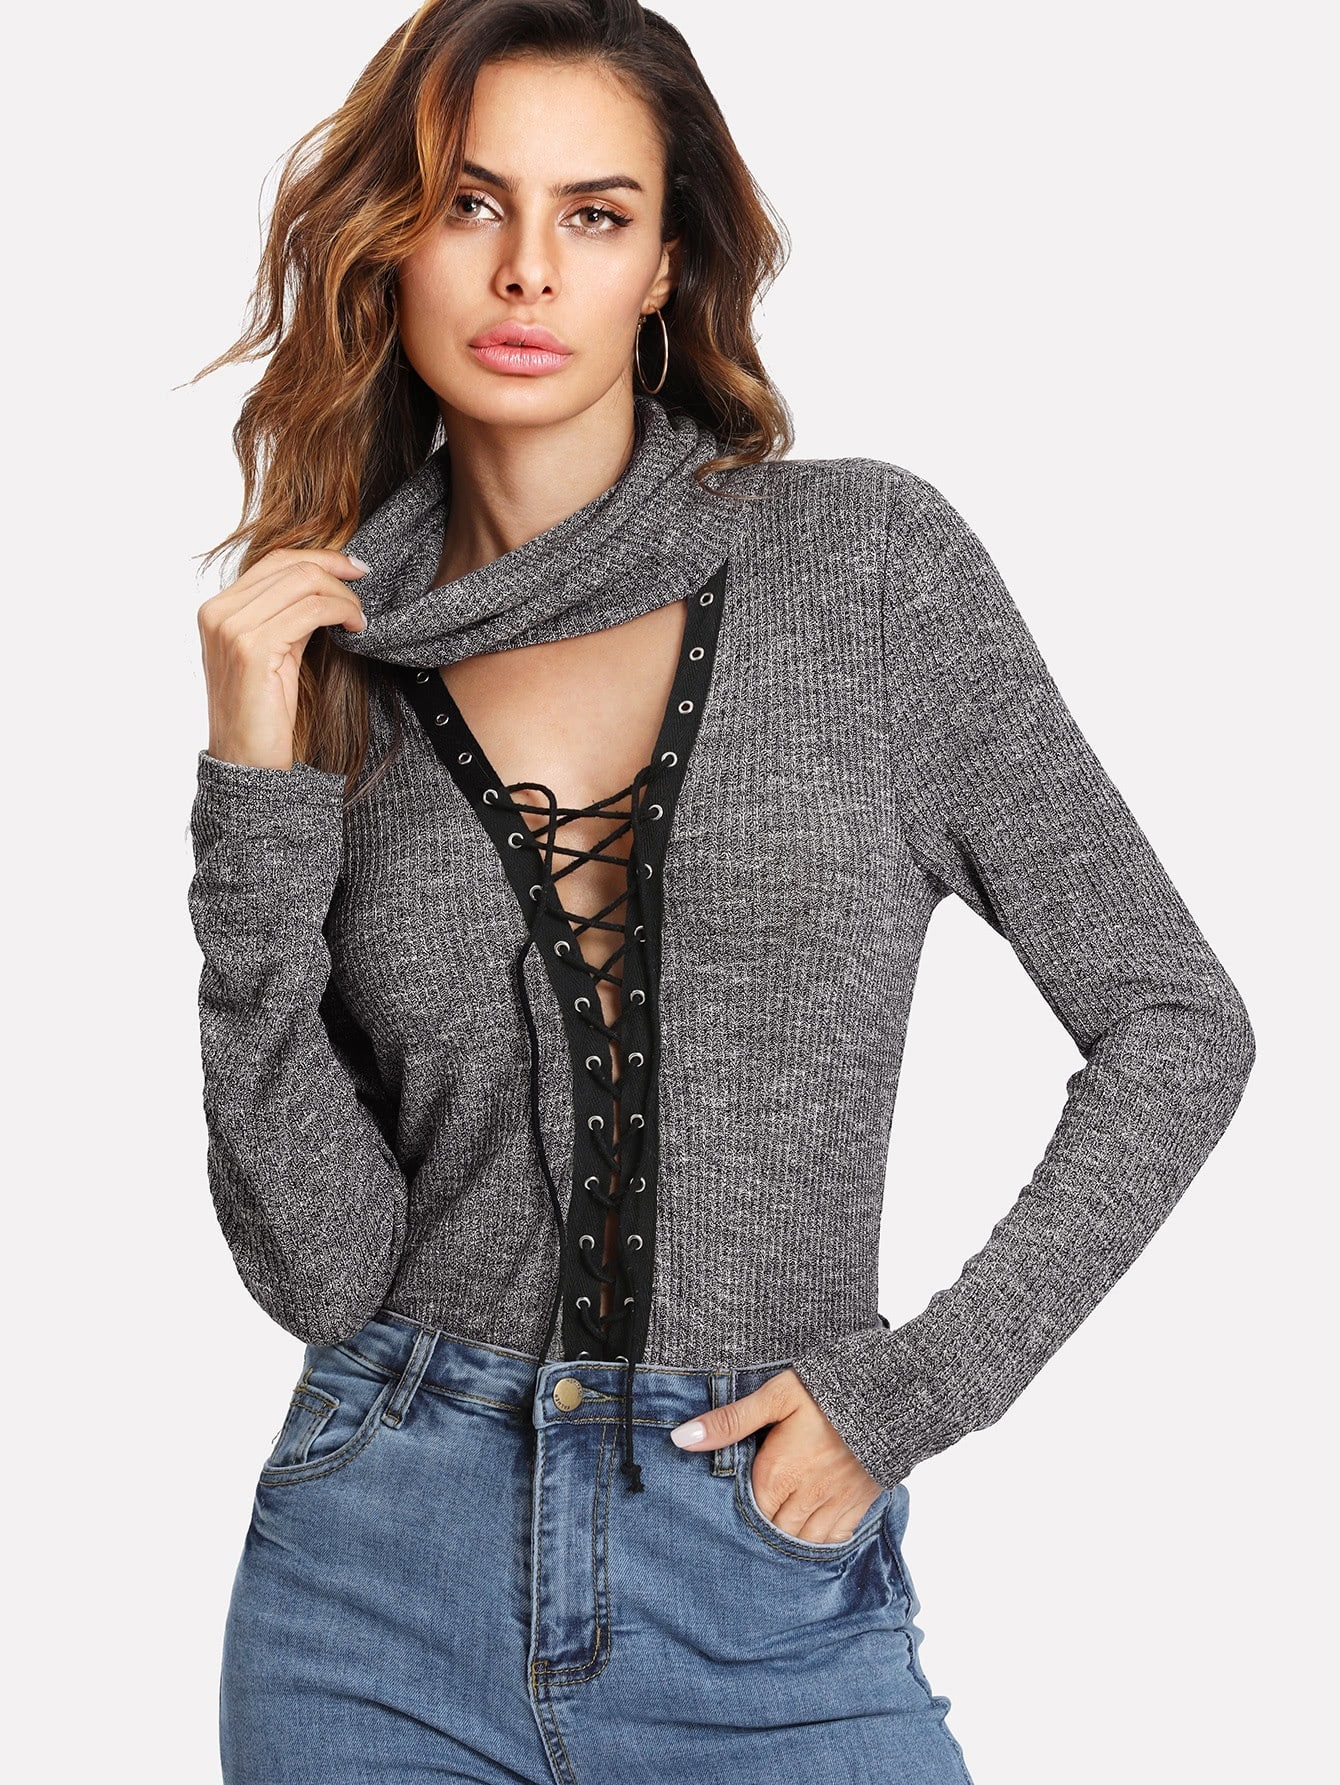 Cowl Neck Plunging Lace Up Marled T-shirt marled plaid cowl neck top